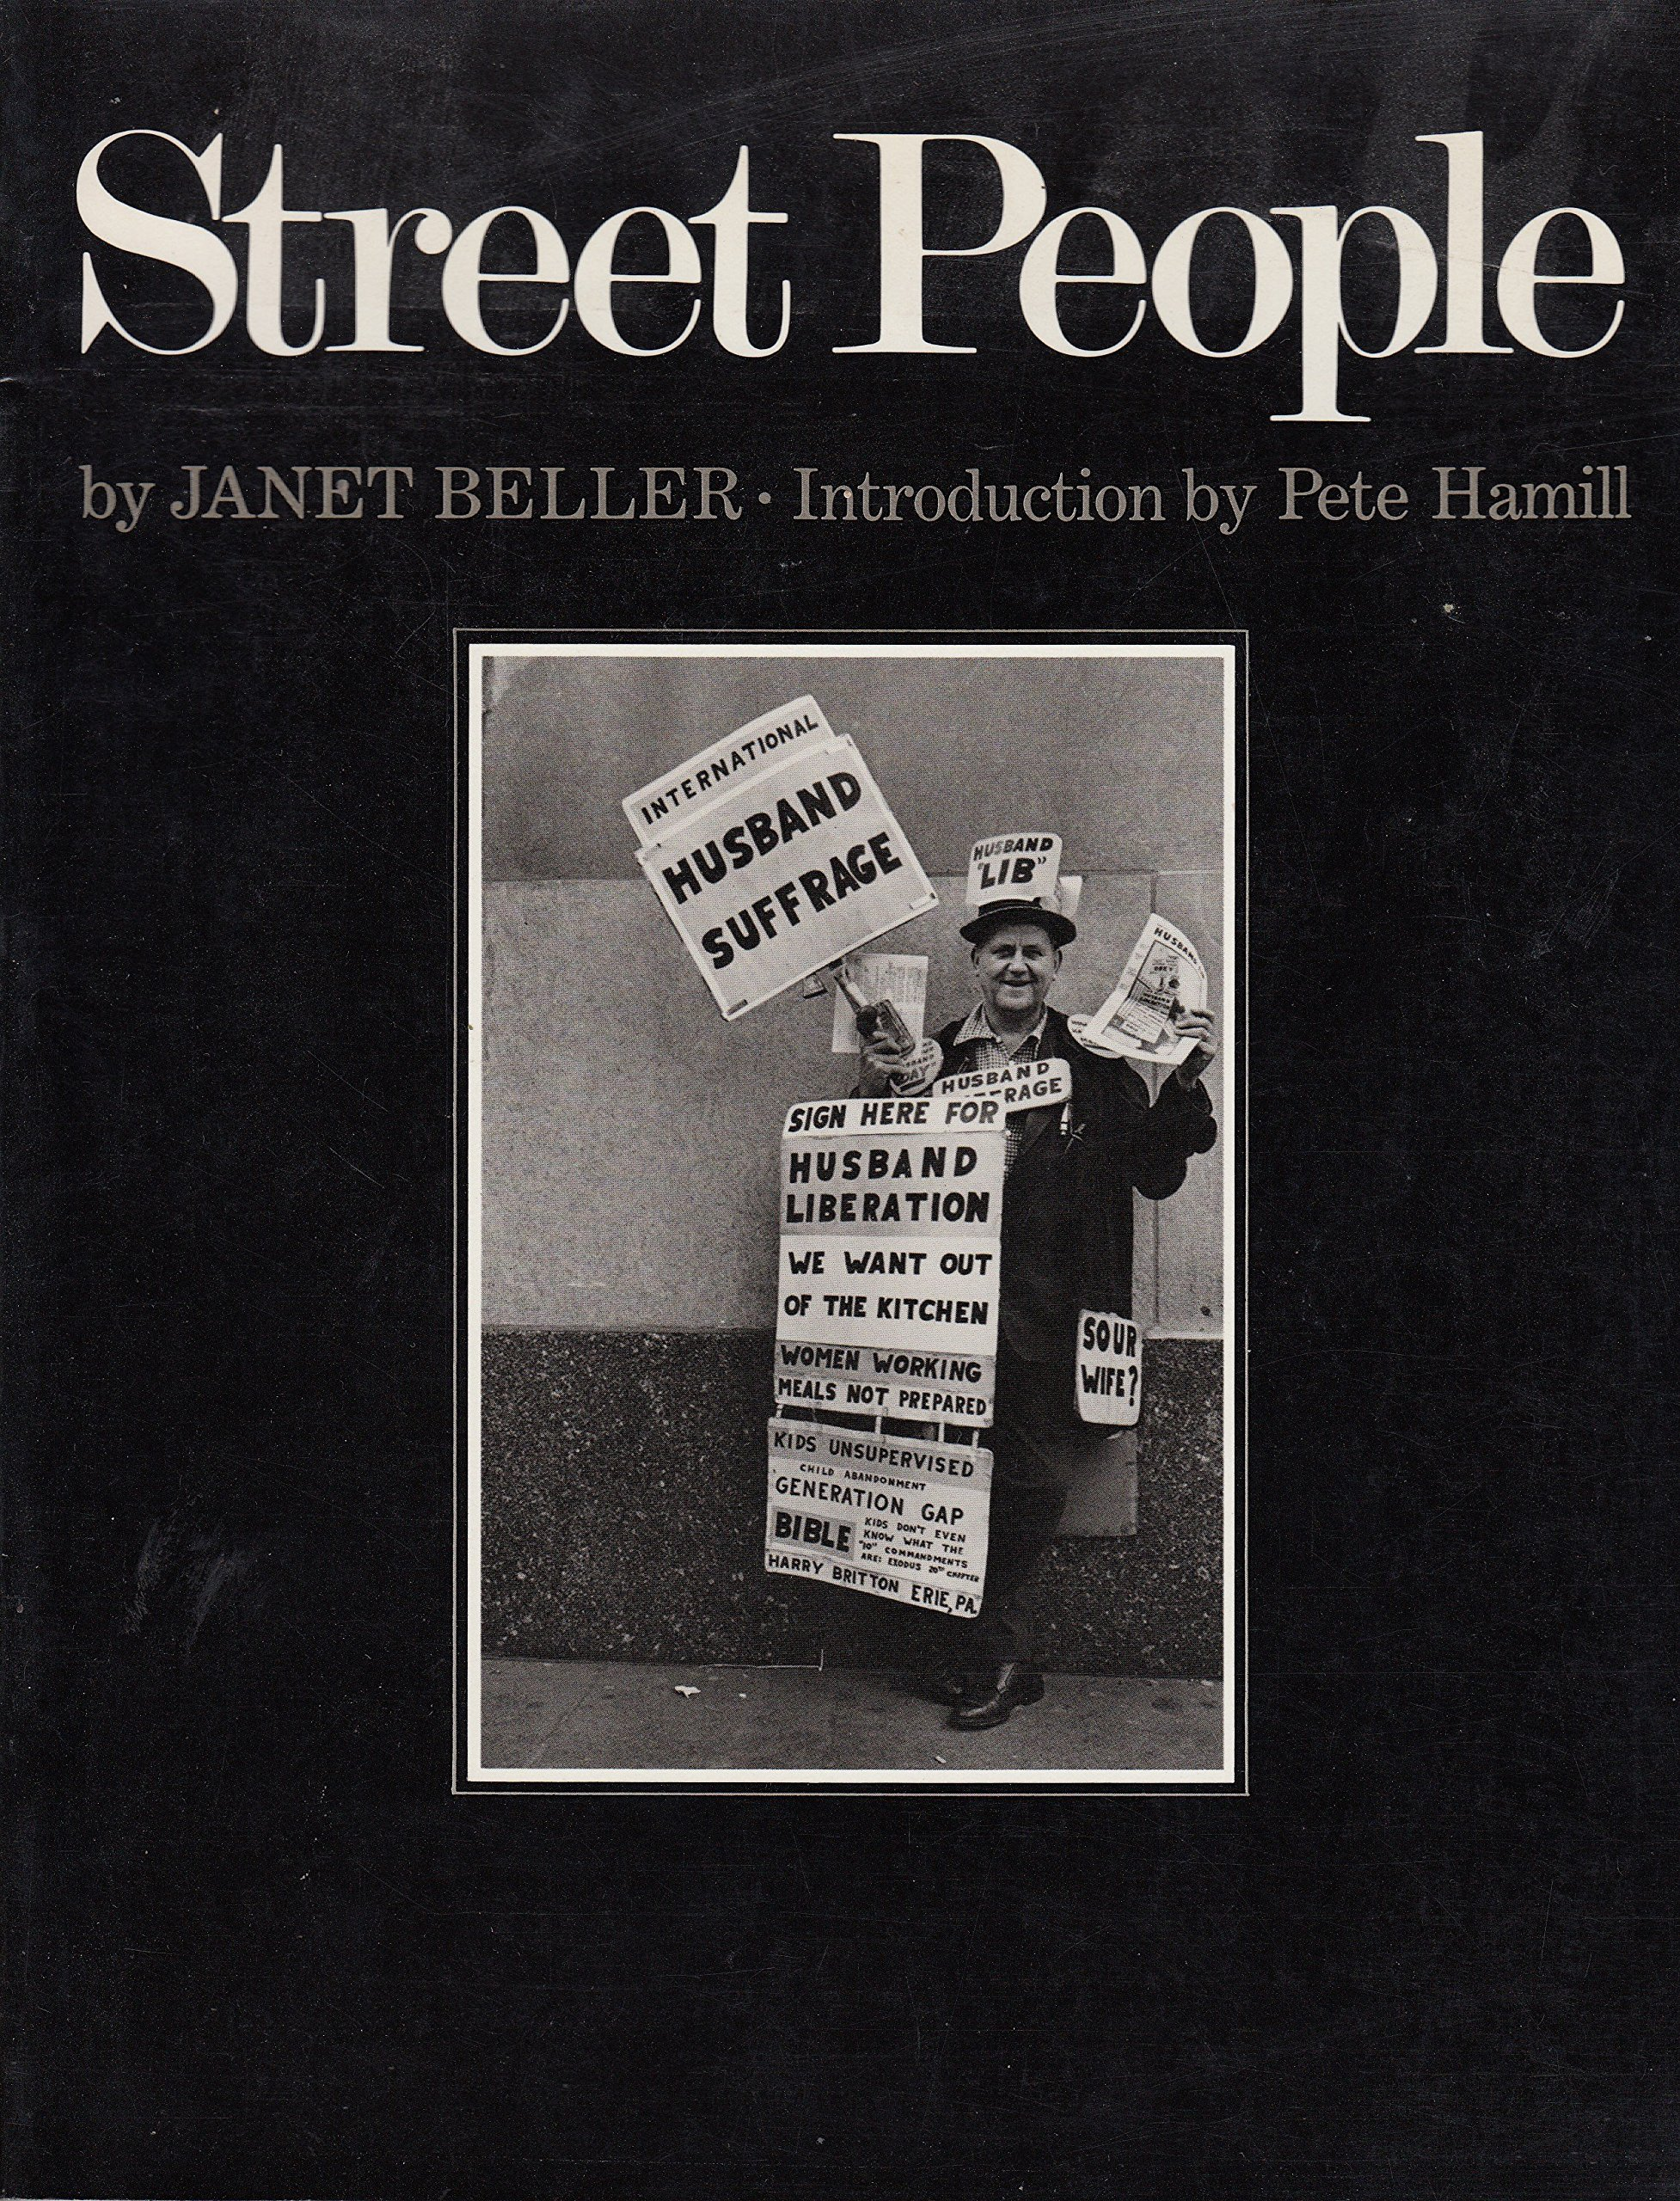 STREET PEOPLE, Janet Beller